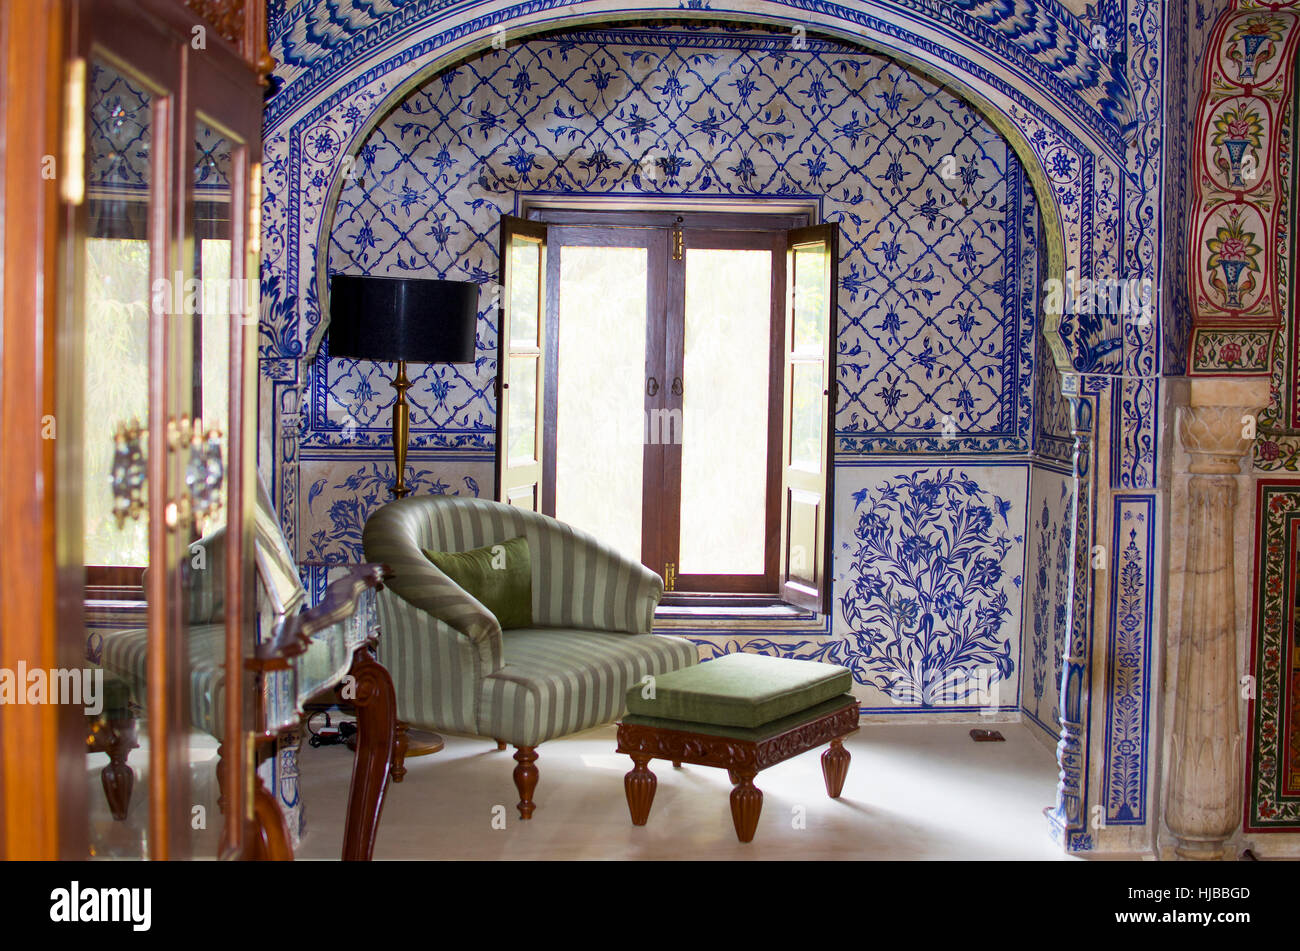 Exceptionnel Interior In The Indian Style With Furniture, An Interior, Indian, Style, Old